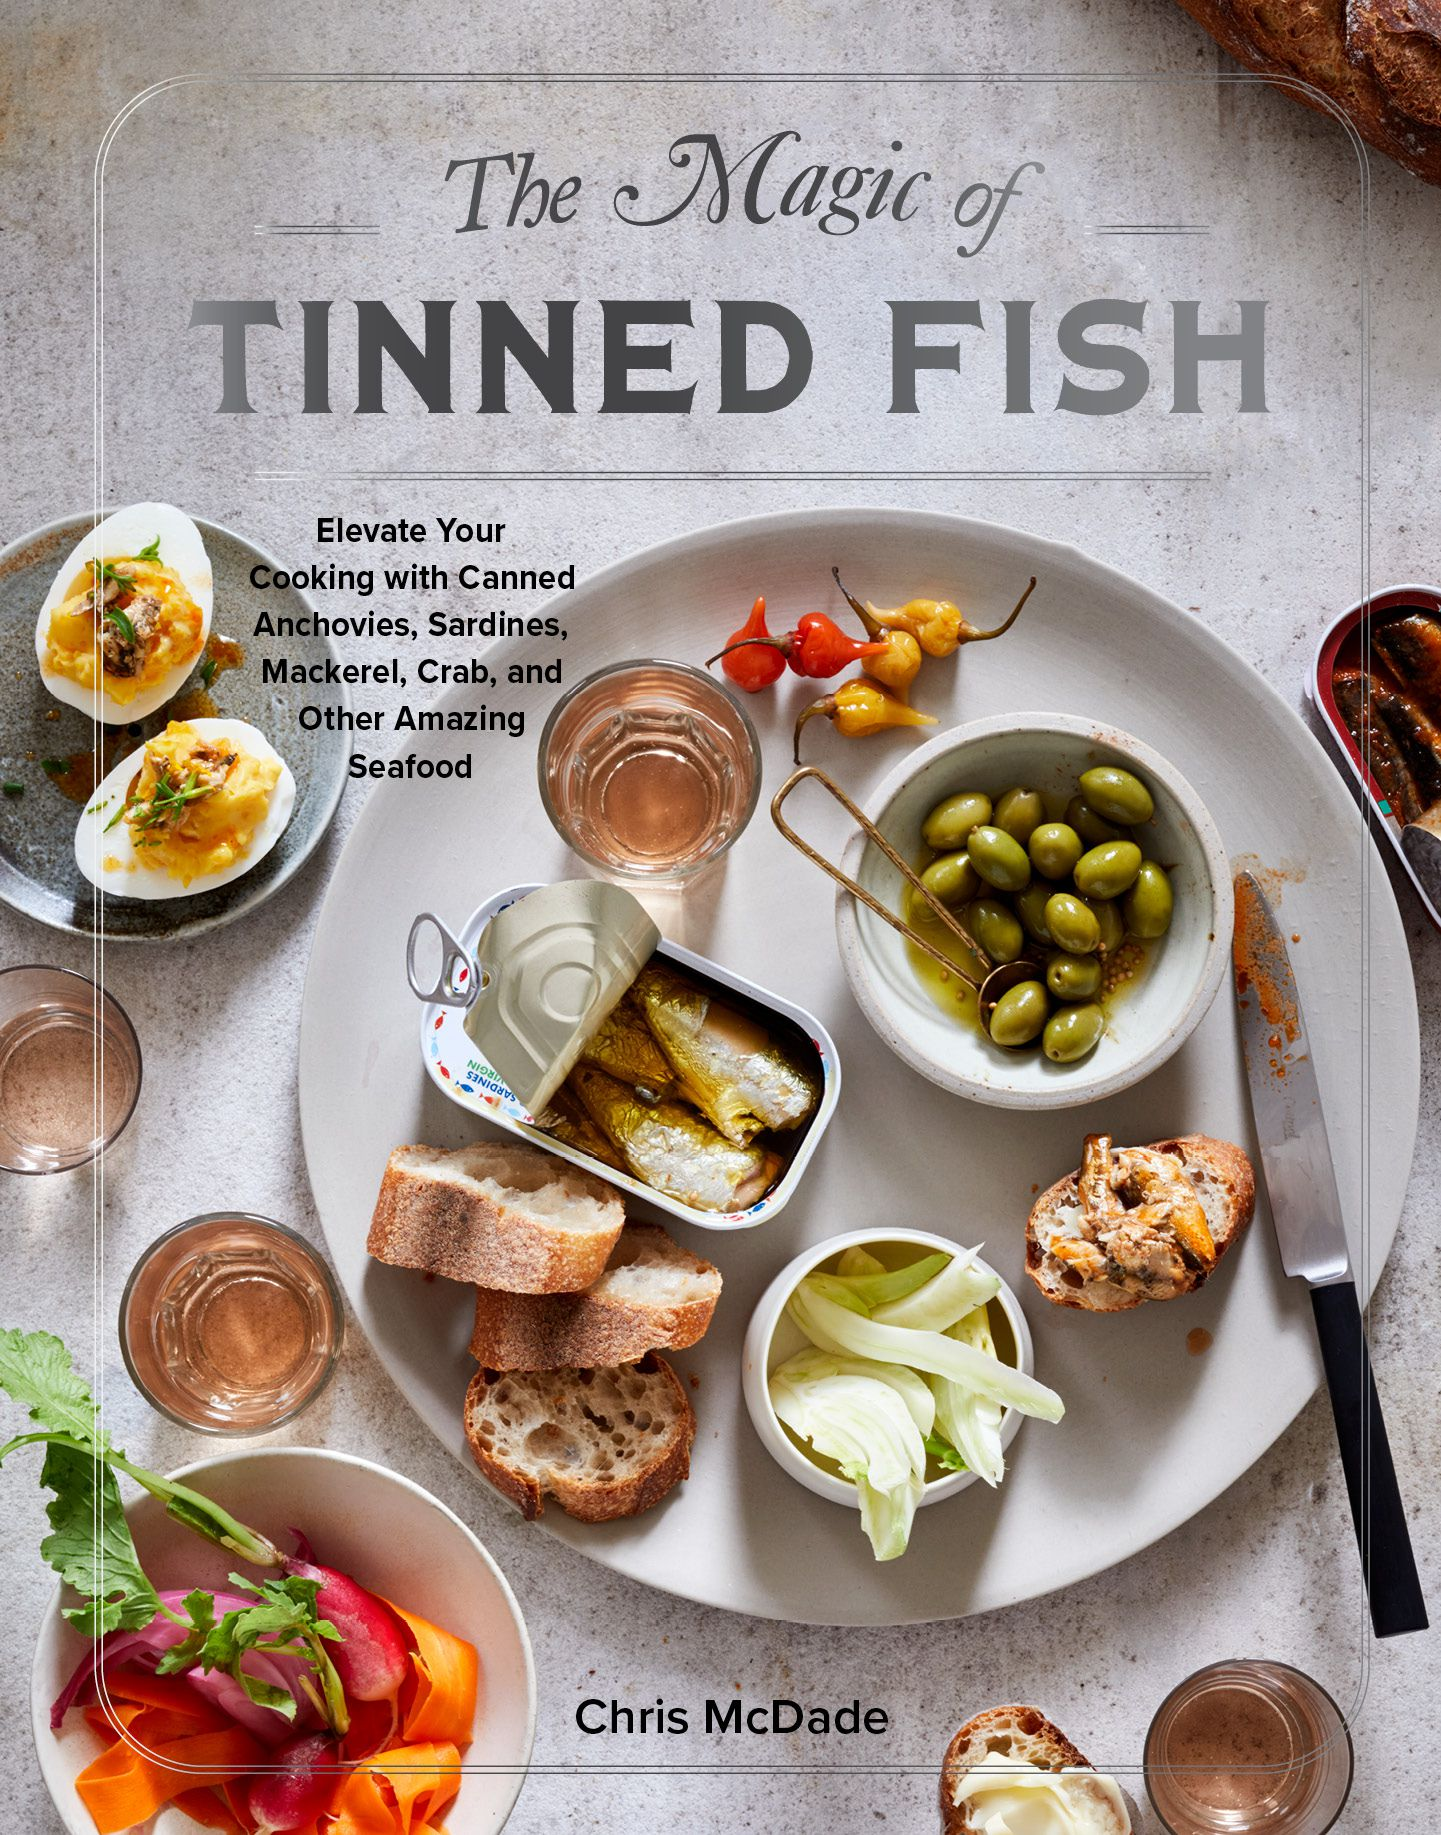 """""""The Magic of Tinned Fish: Elevate Your Cooking With Canned Anchovies, Sardines, Mackerel, Crab, and Other Amazing Seafood,"""" by Chris McDade"""